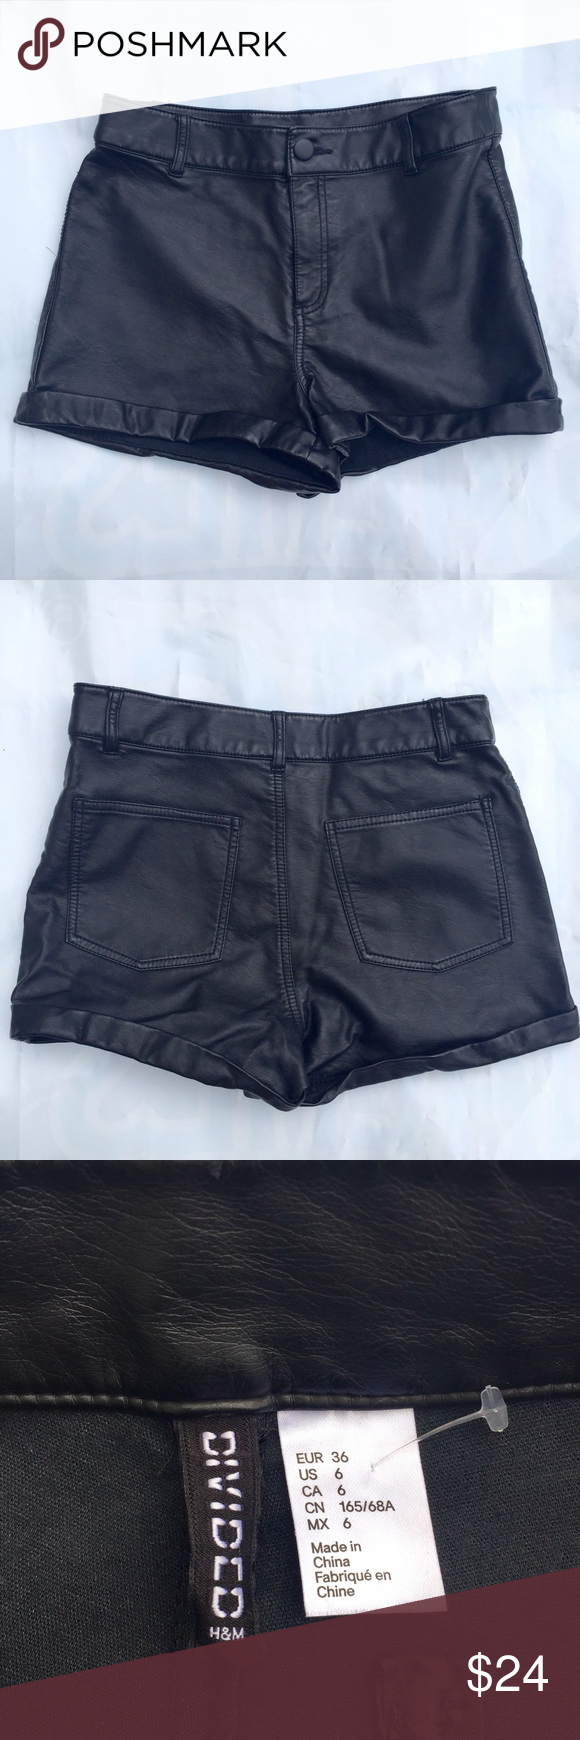 H&M Faux Leather Shorts Much more comfortable than real leather, back pockets, size 6 shorts from H&M. Worn only once. Divided Shorts